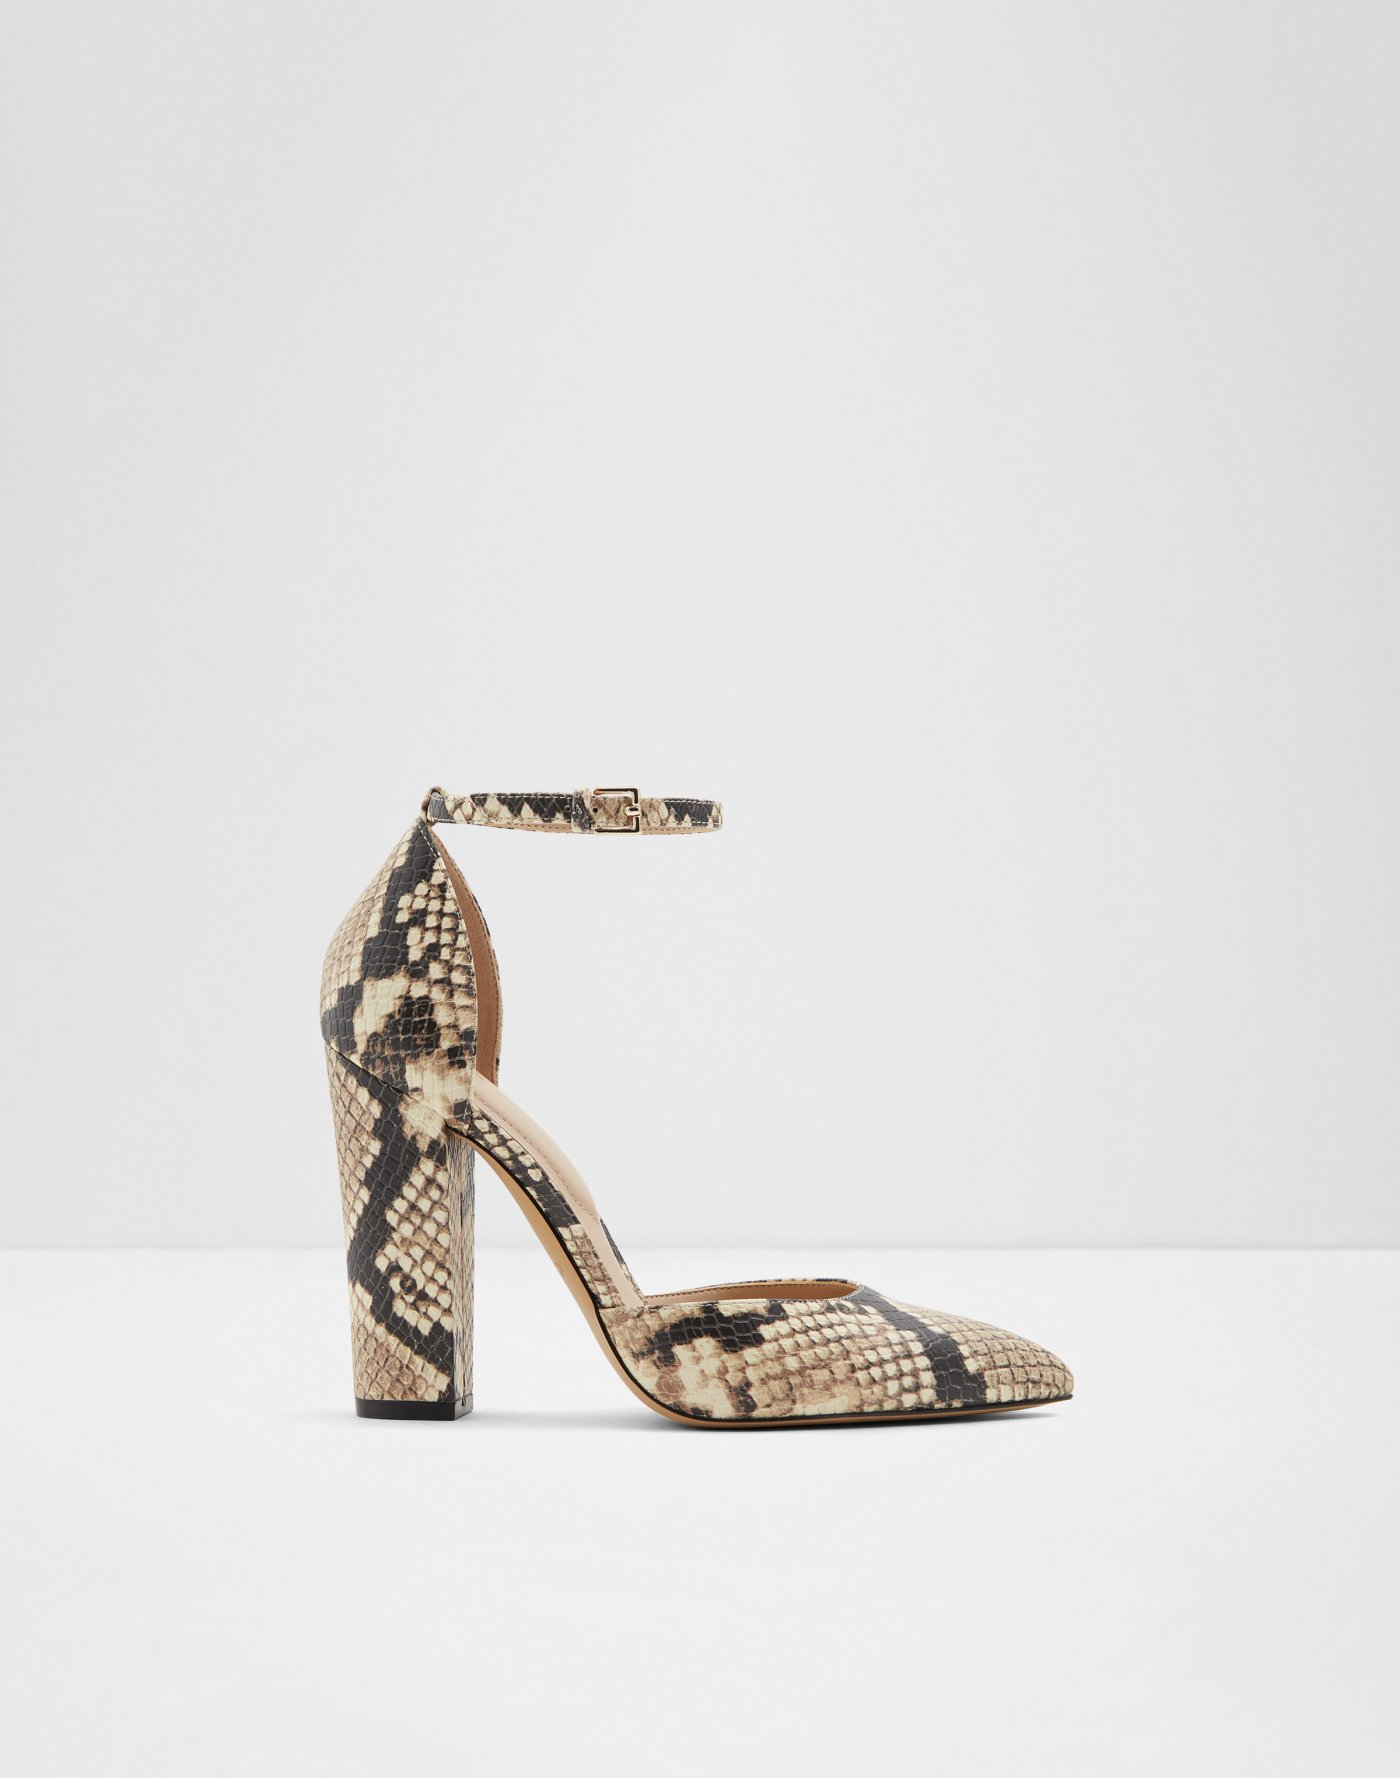 d3f2f5d69 Women's Heels | Black, Red, Nude, Silver Heels | ALDO US | Aldoshoes.com US